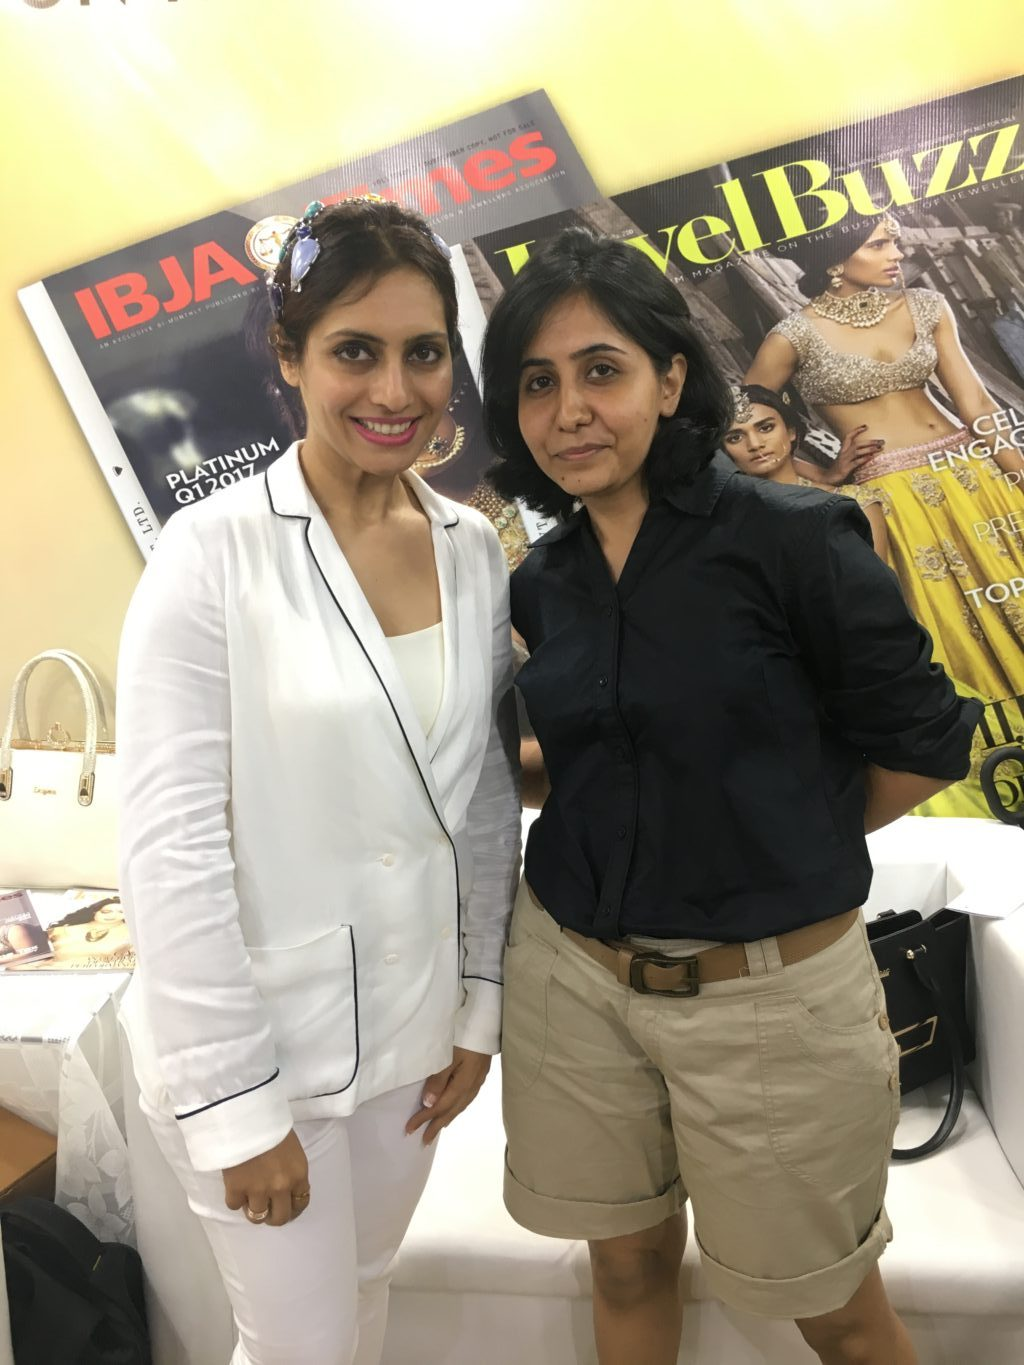 Our Click From IIJS 2017 At Jewel Buzz Booth When Karishma S Jain And I Met. Image : StylePrer